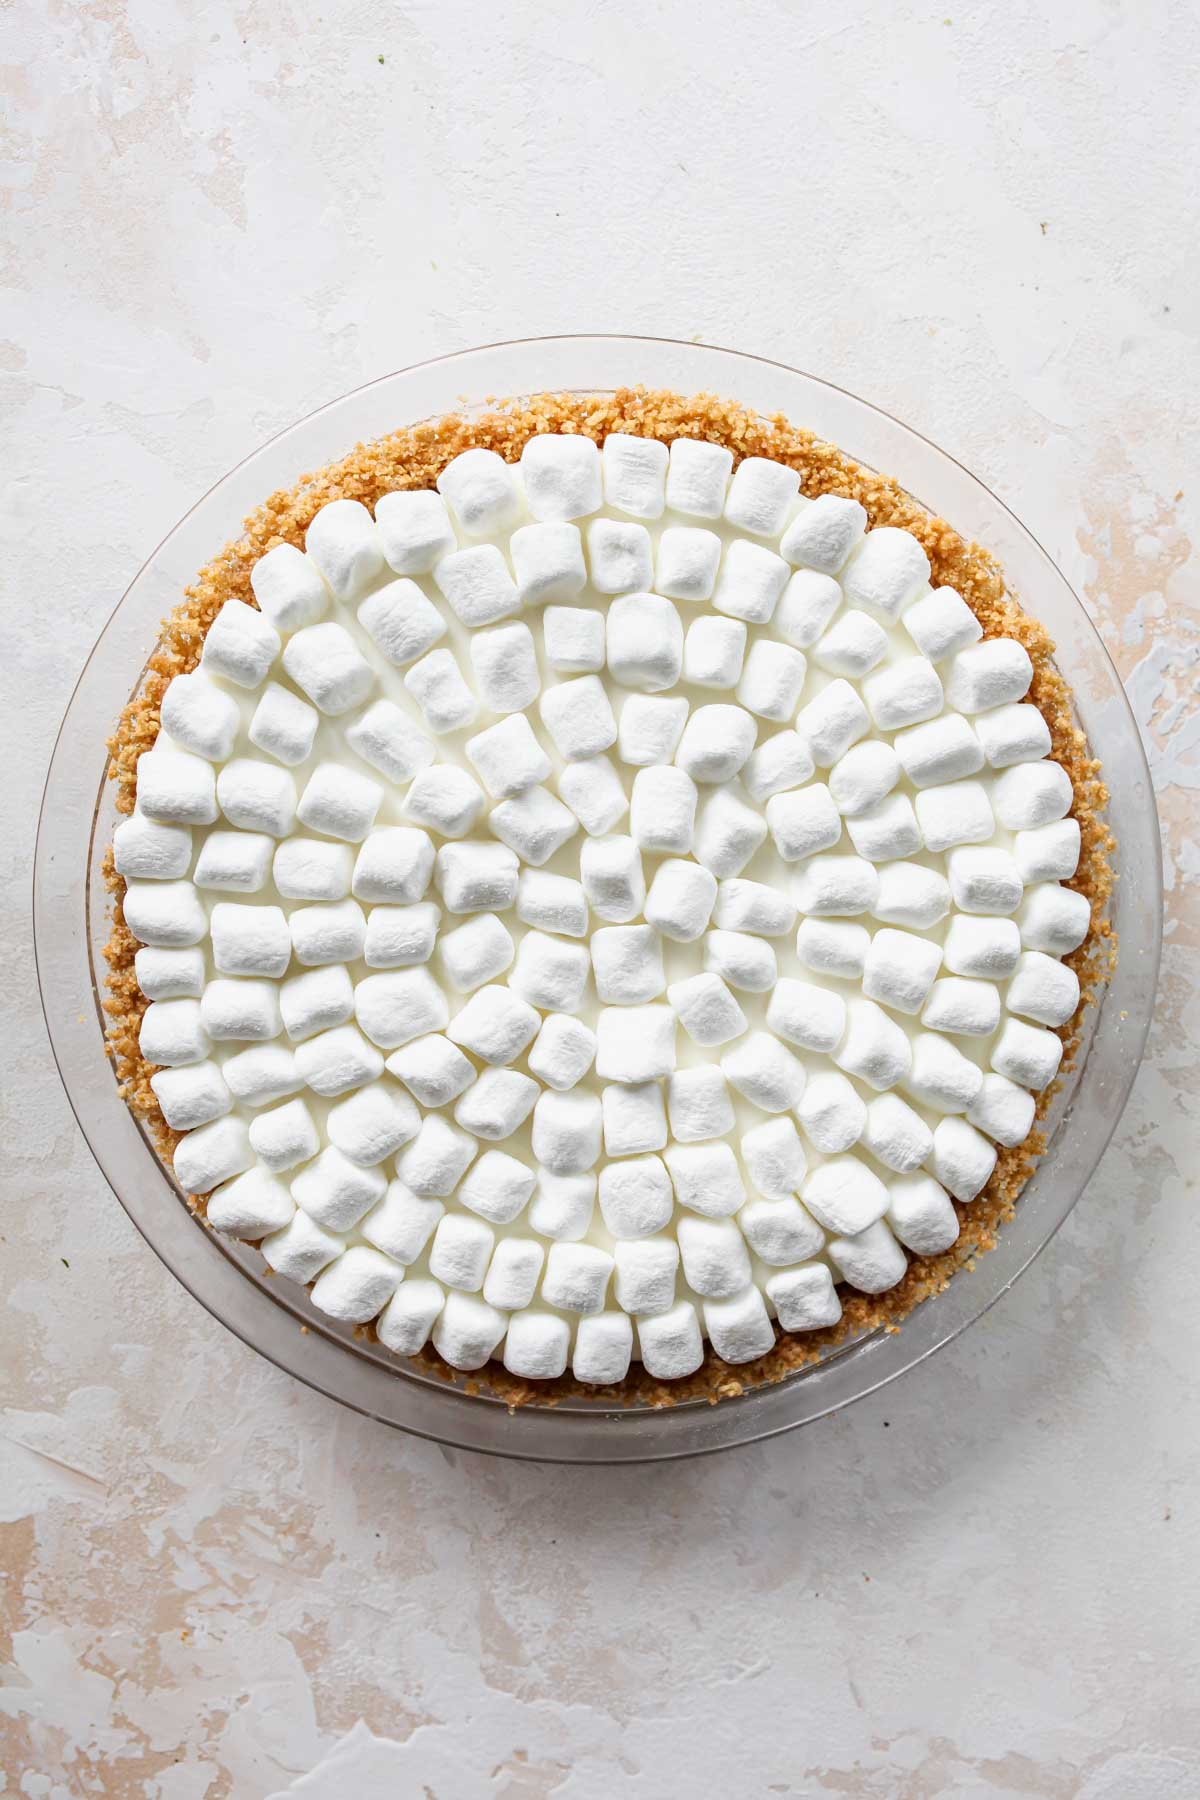 Mini marshmallows being placed on top of a pie